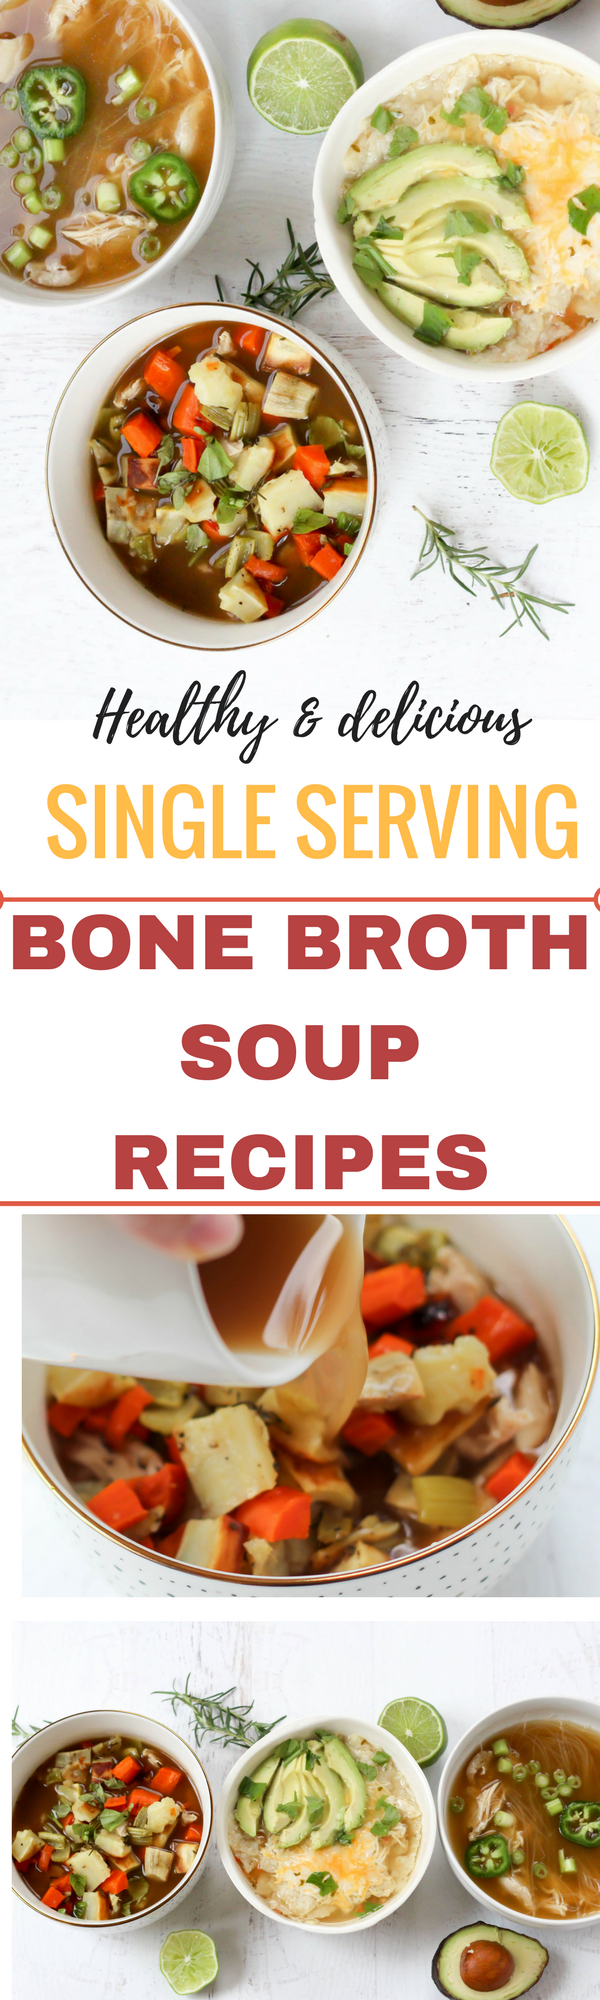 Single serving bone broth soup recipes. These are amazing for healthy packed lunches, or as part of weekly meal prep. fitnessista.com